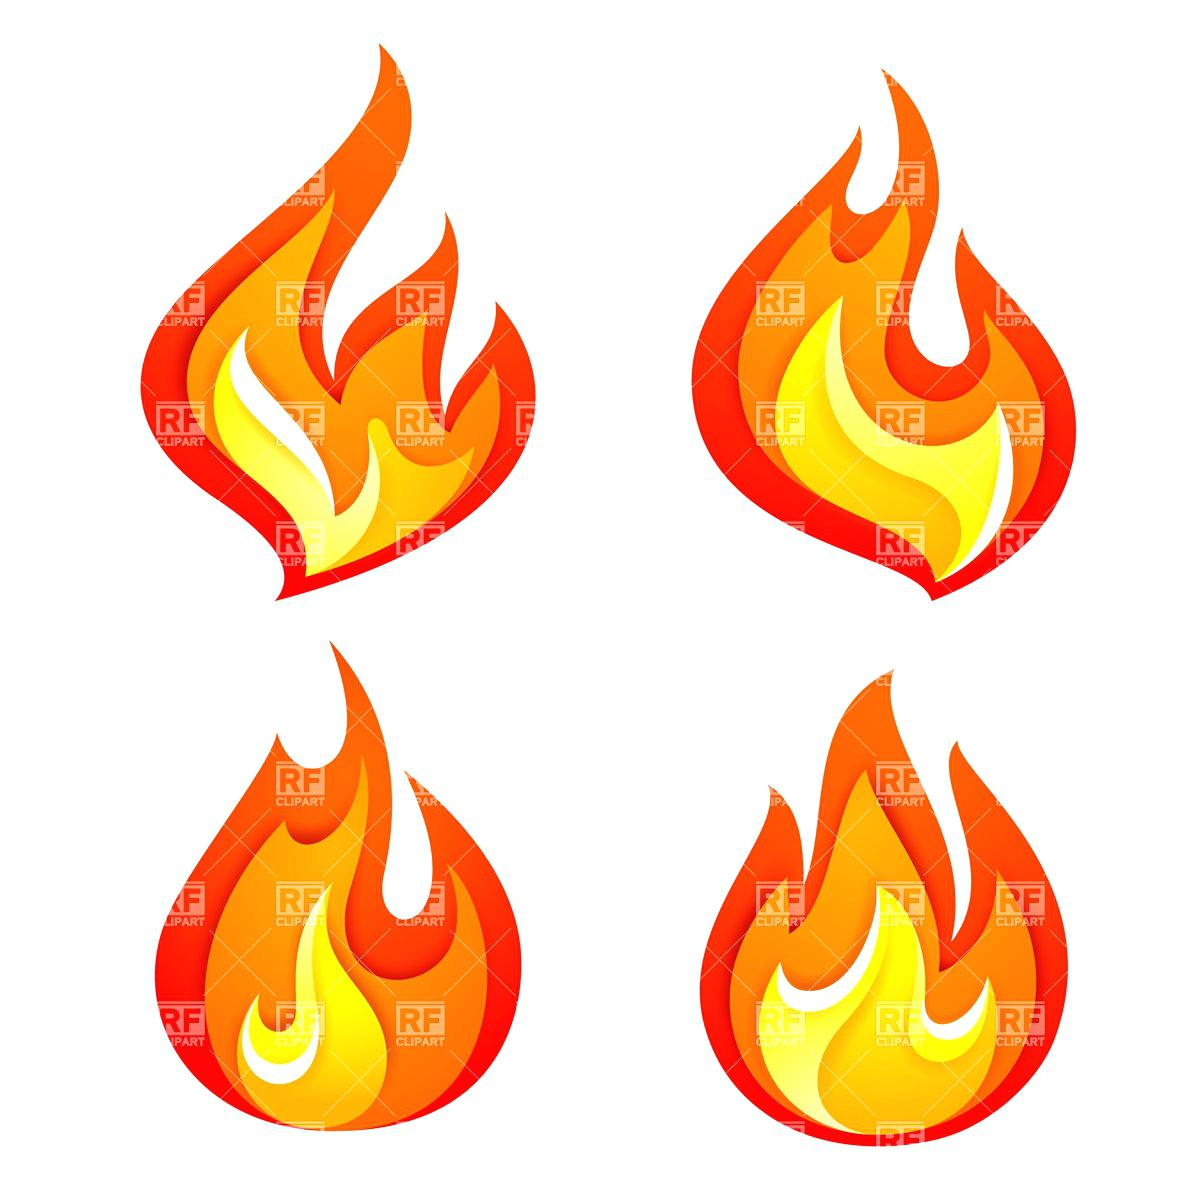 1200x1200 Flame Wallpaper Border Simple Flames Transparent Background Free